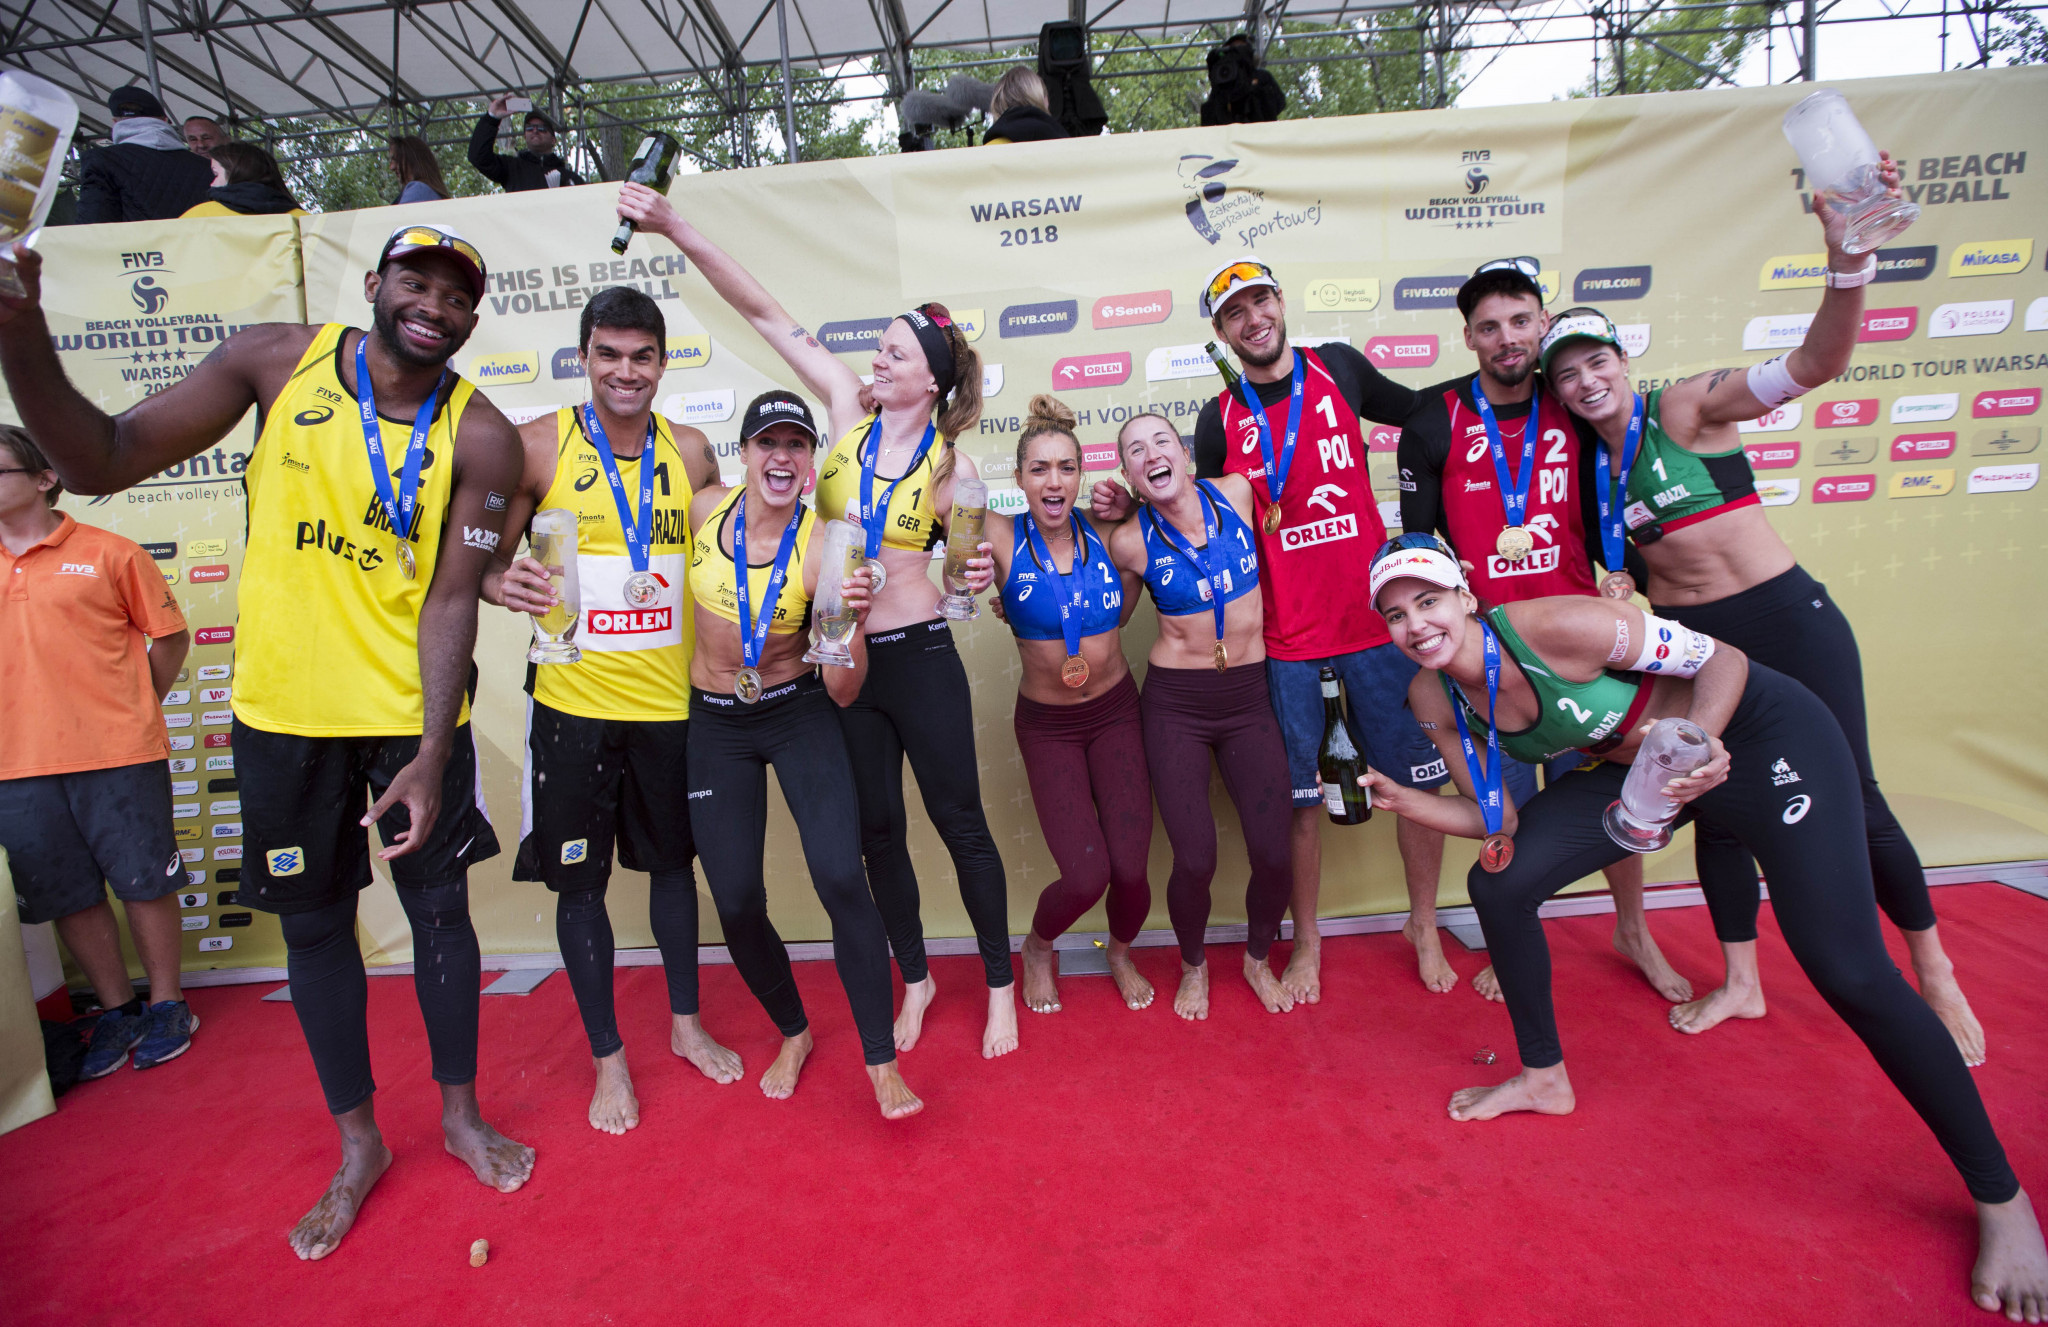 Poland's Piotr Kantor and Bartosz Łosiak and Canada's Heather Bansley and Brandie Wilkerson triumphed at last year's edition of the event in Warsaw ©FIVB